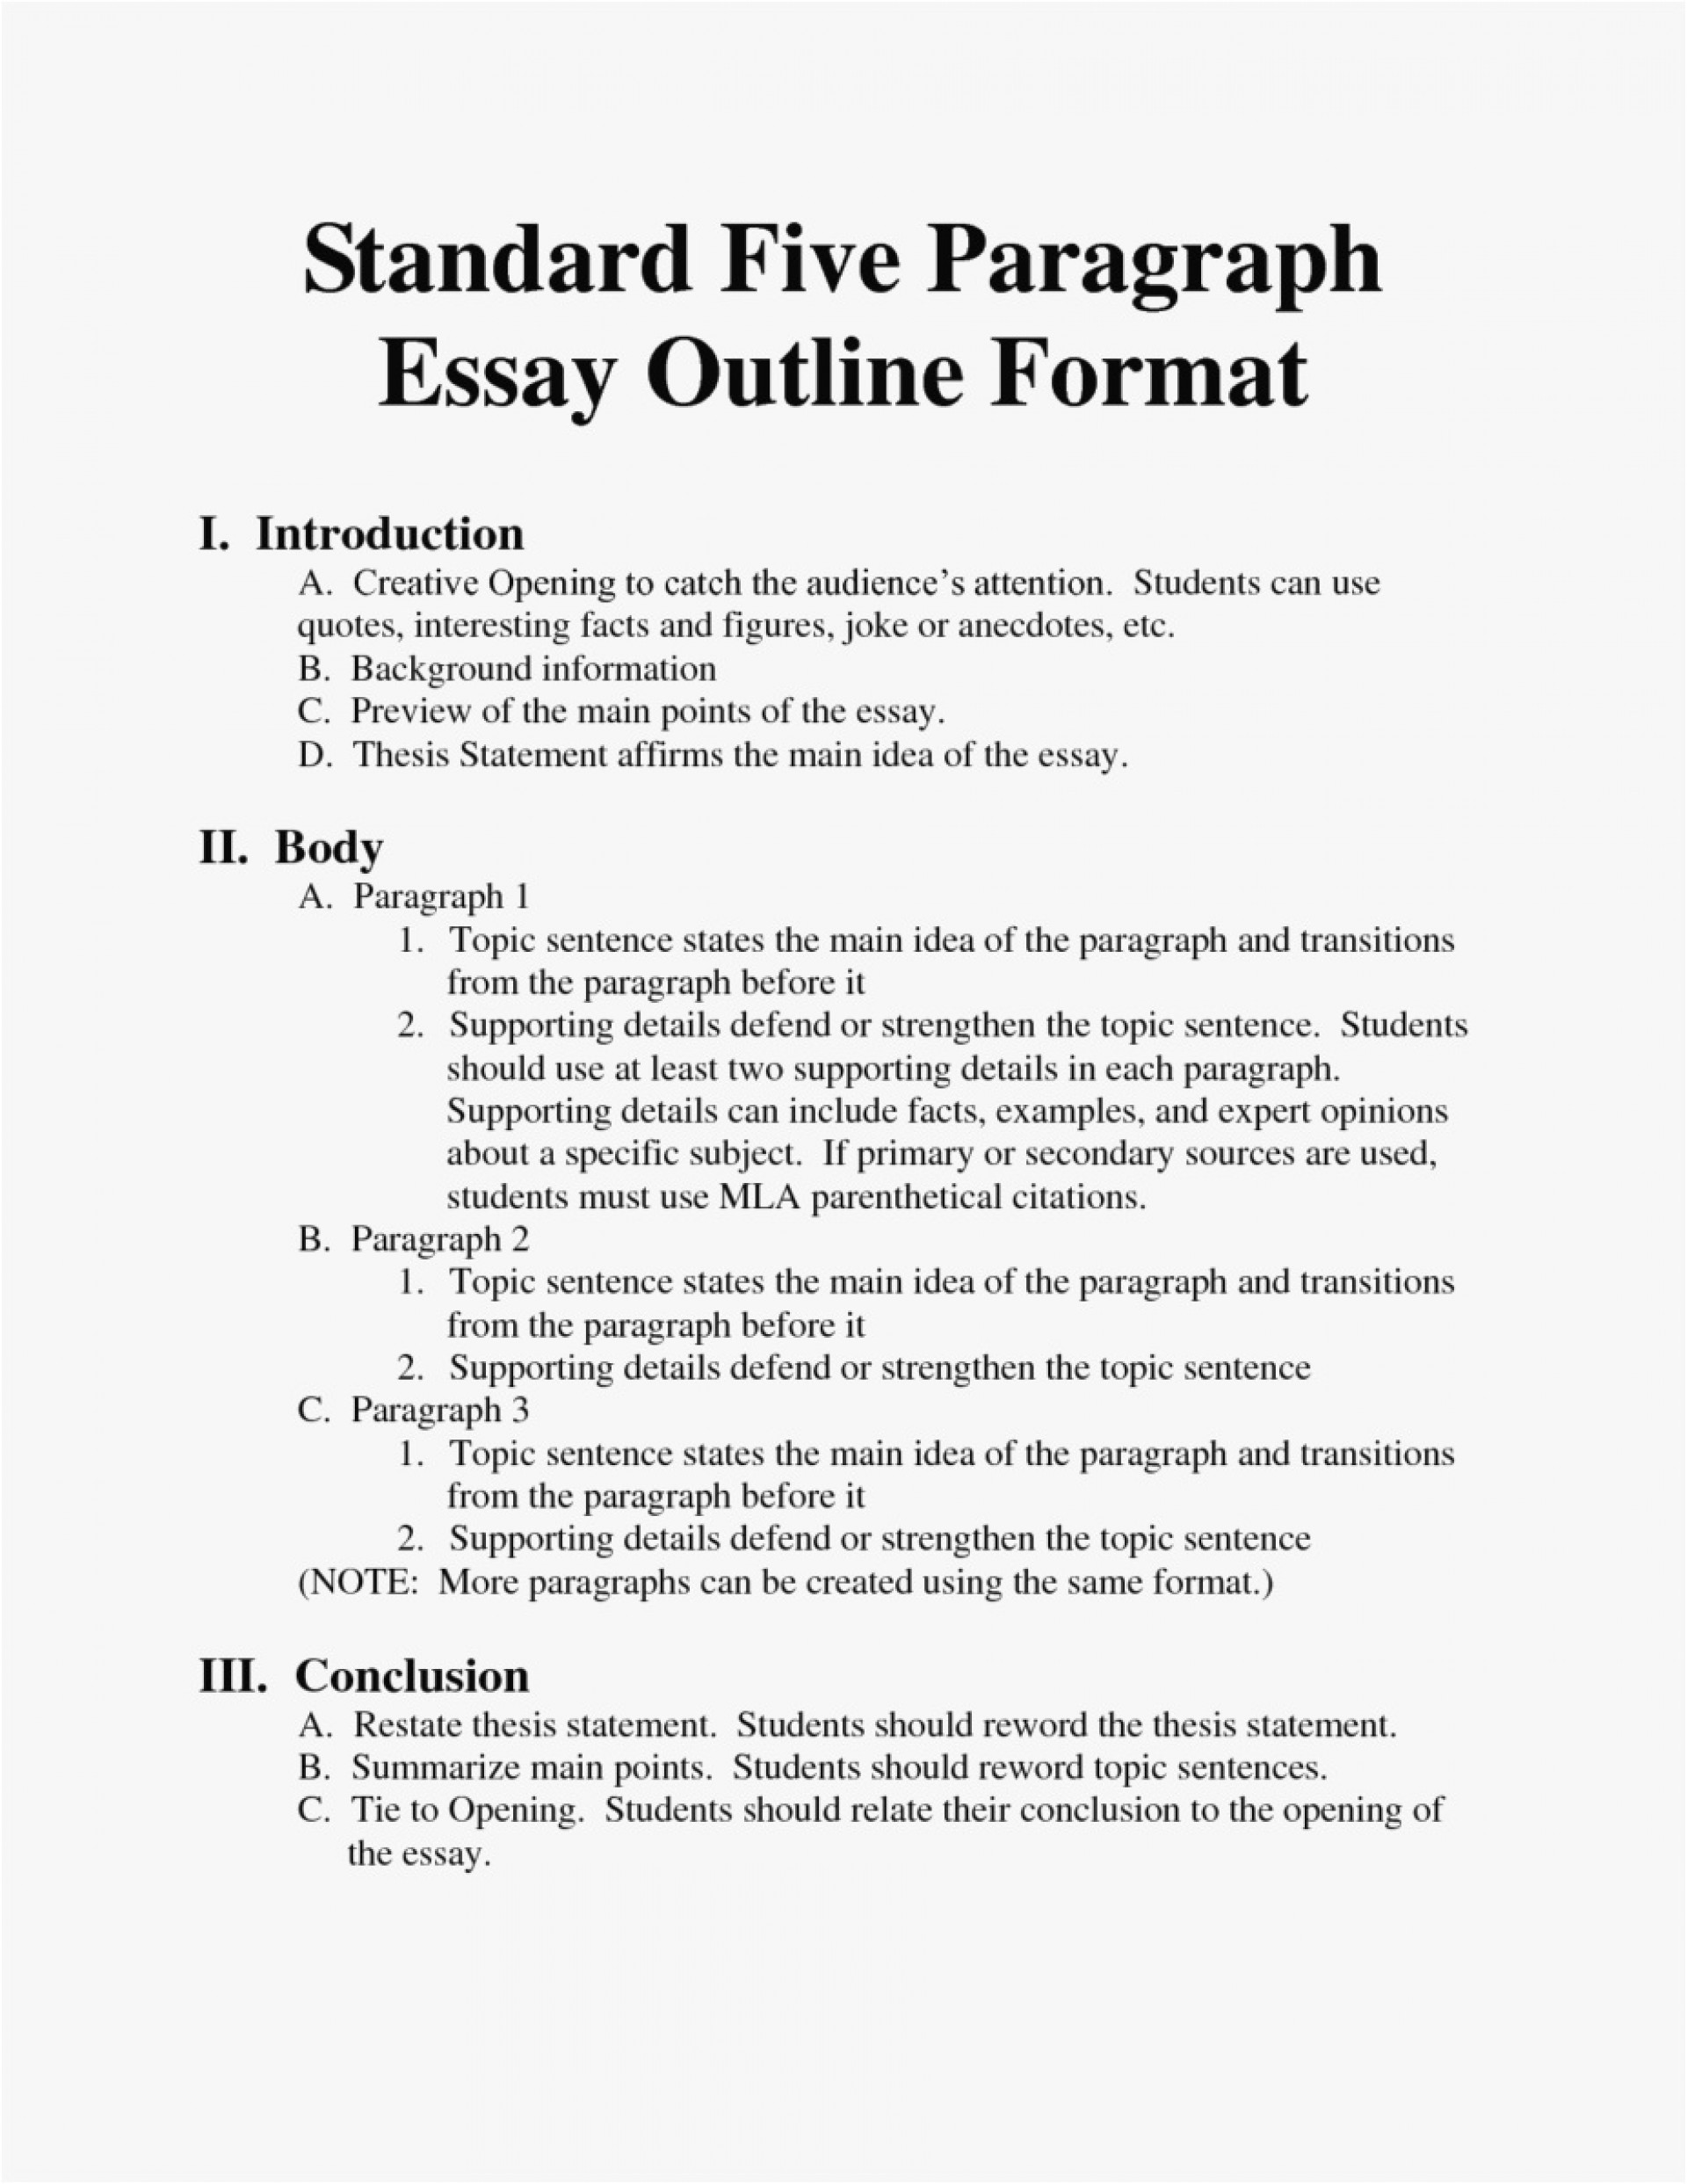 010 Best Essays Essay Example College Outline Template Picture What Is For Topics Ideas About Ever Identity Ivy League Reddit New York Times Harvard Common App Exceptional 2017 Video 2018 Of All Time 1920